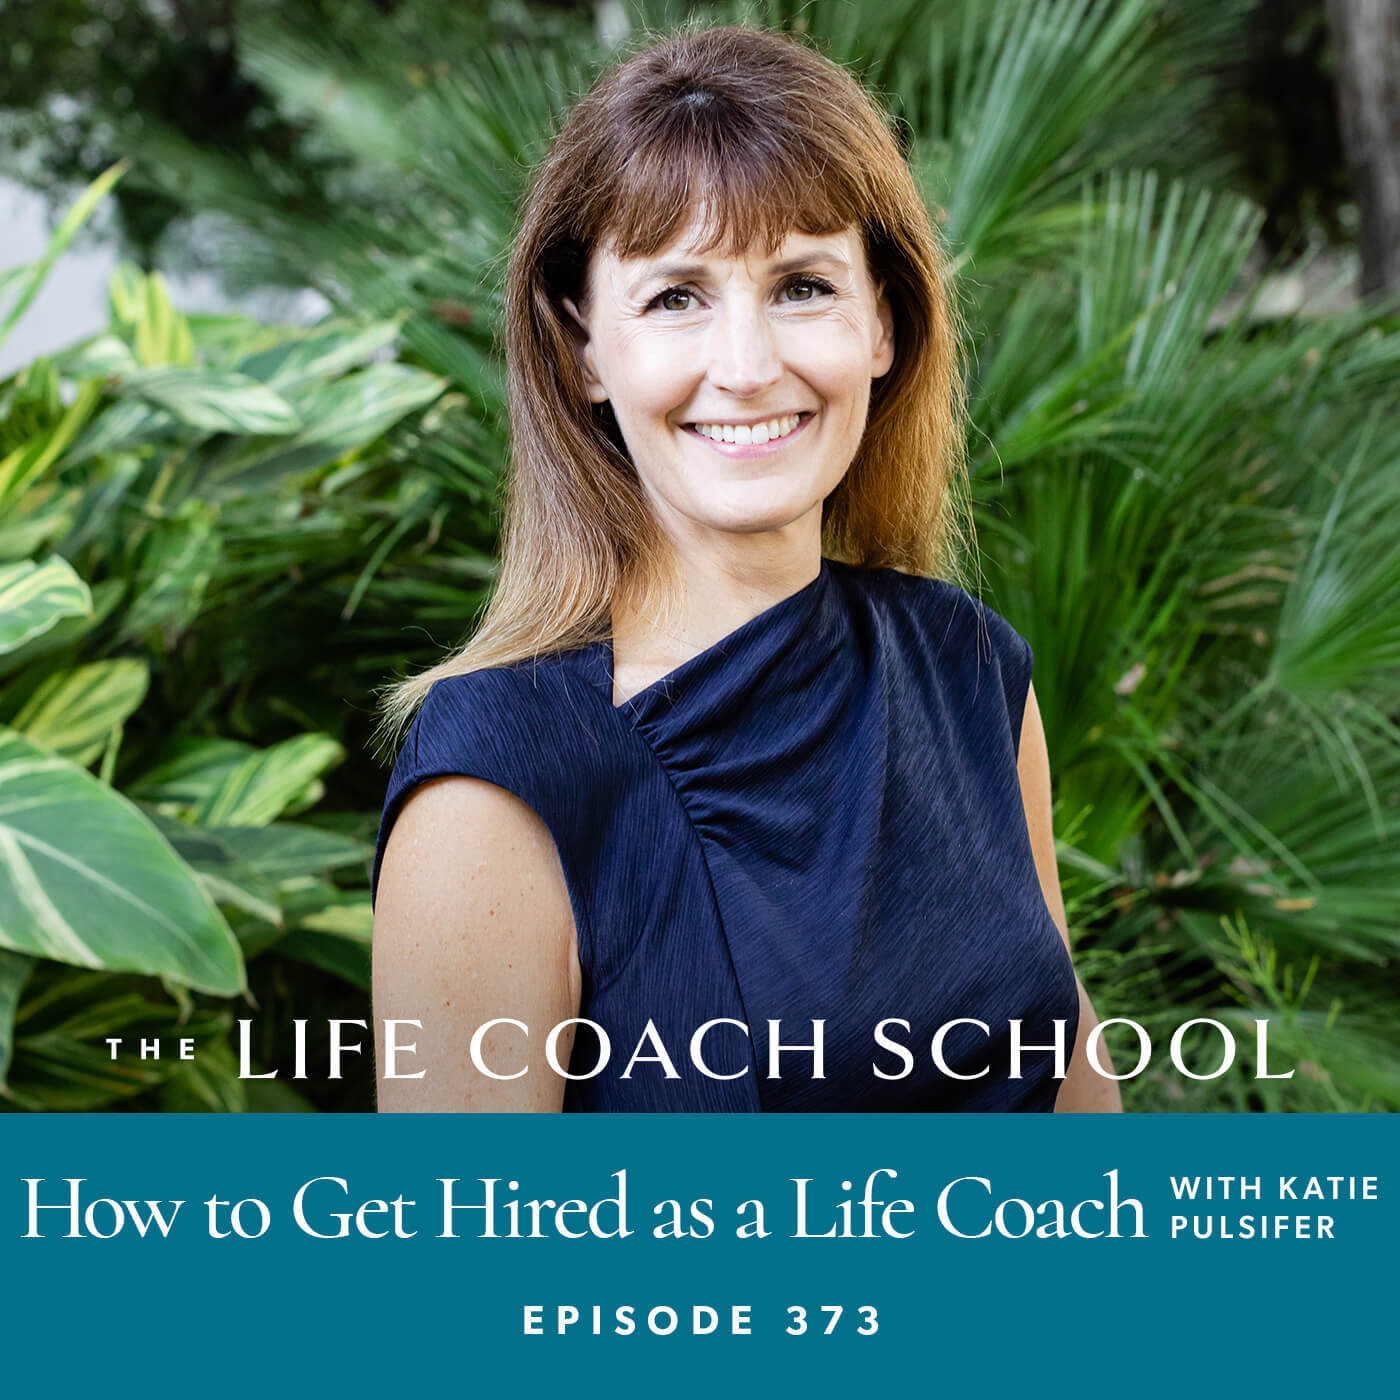 Ep #373: How to Get Hired as a Life Coach with Katie Pulsifer